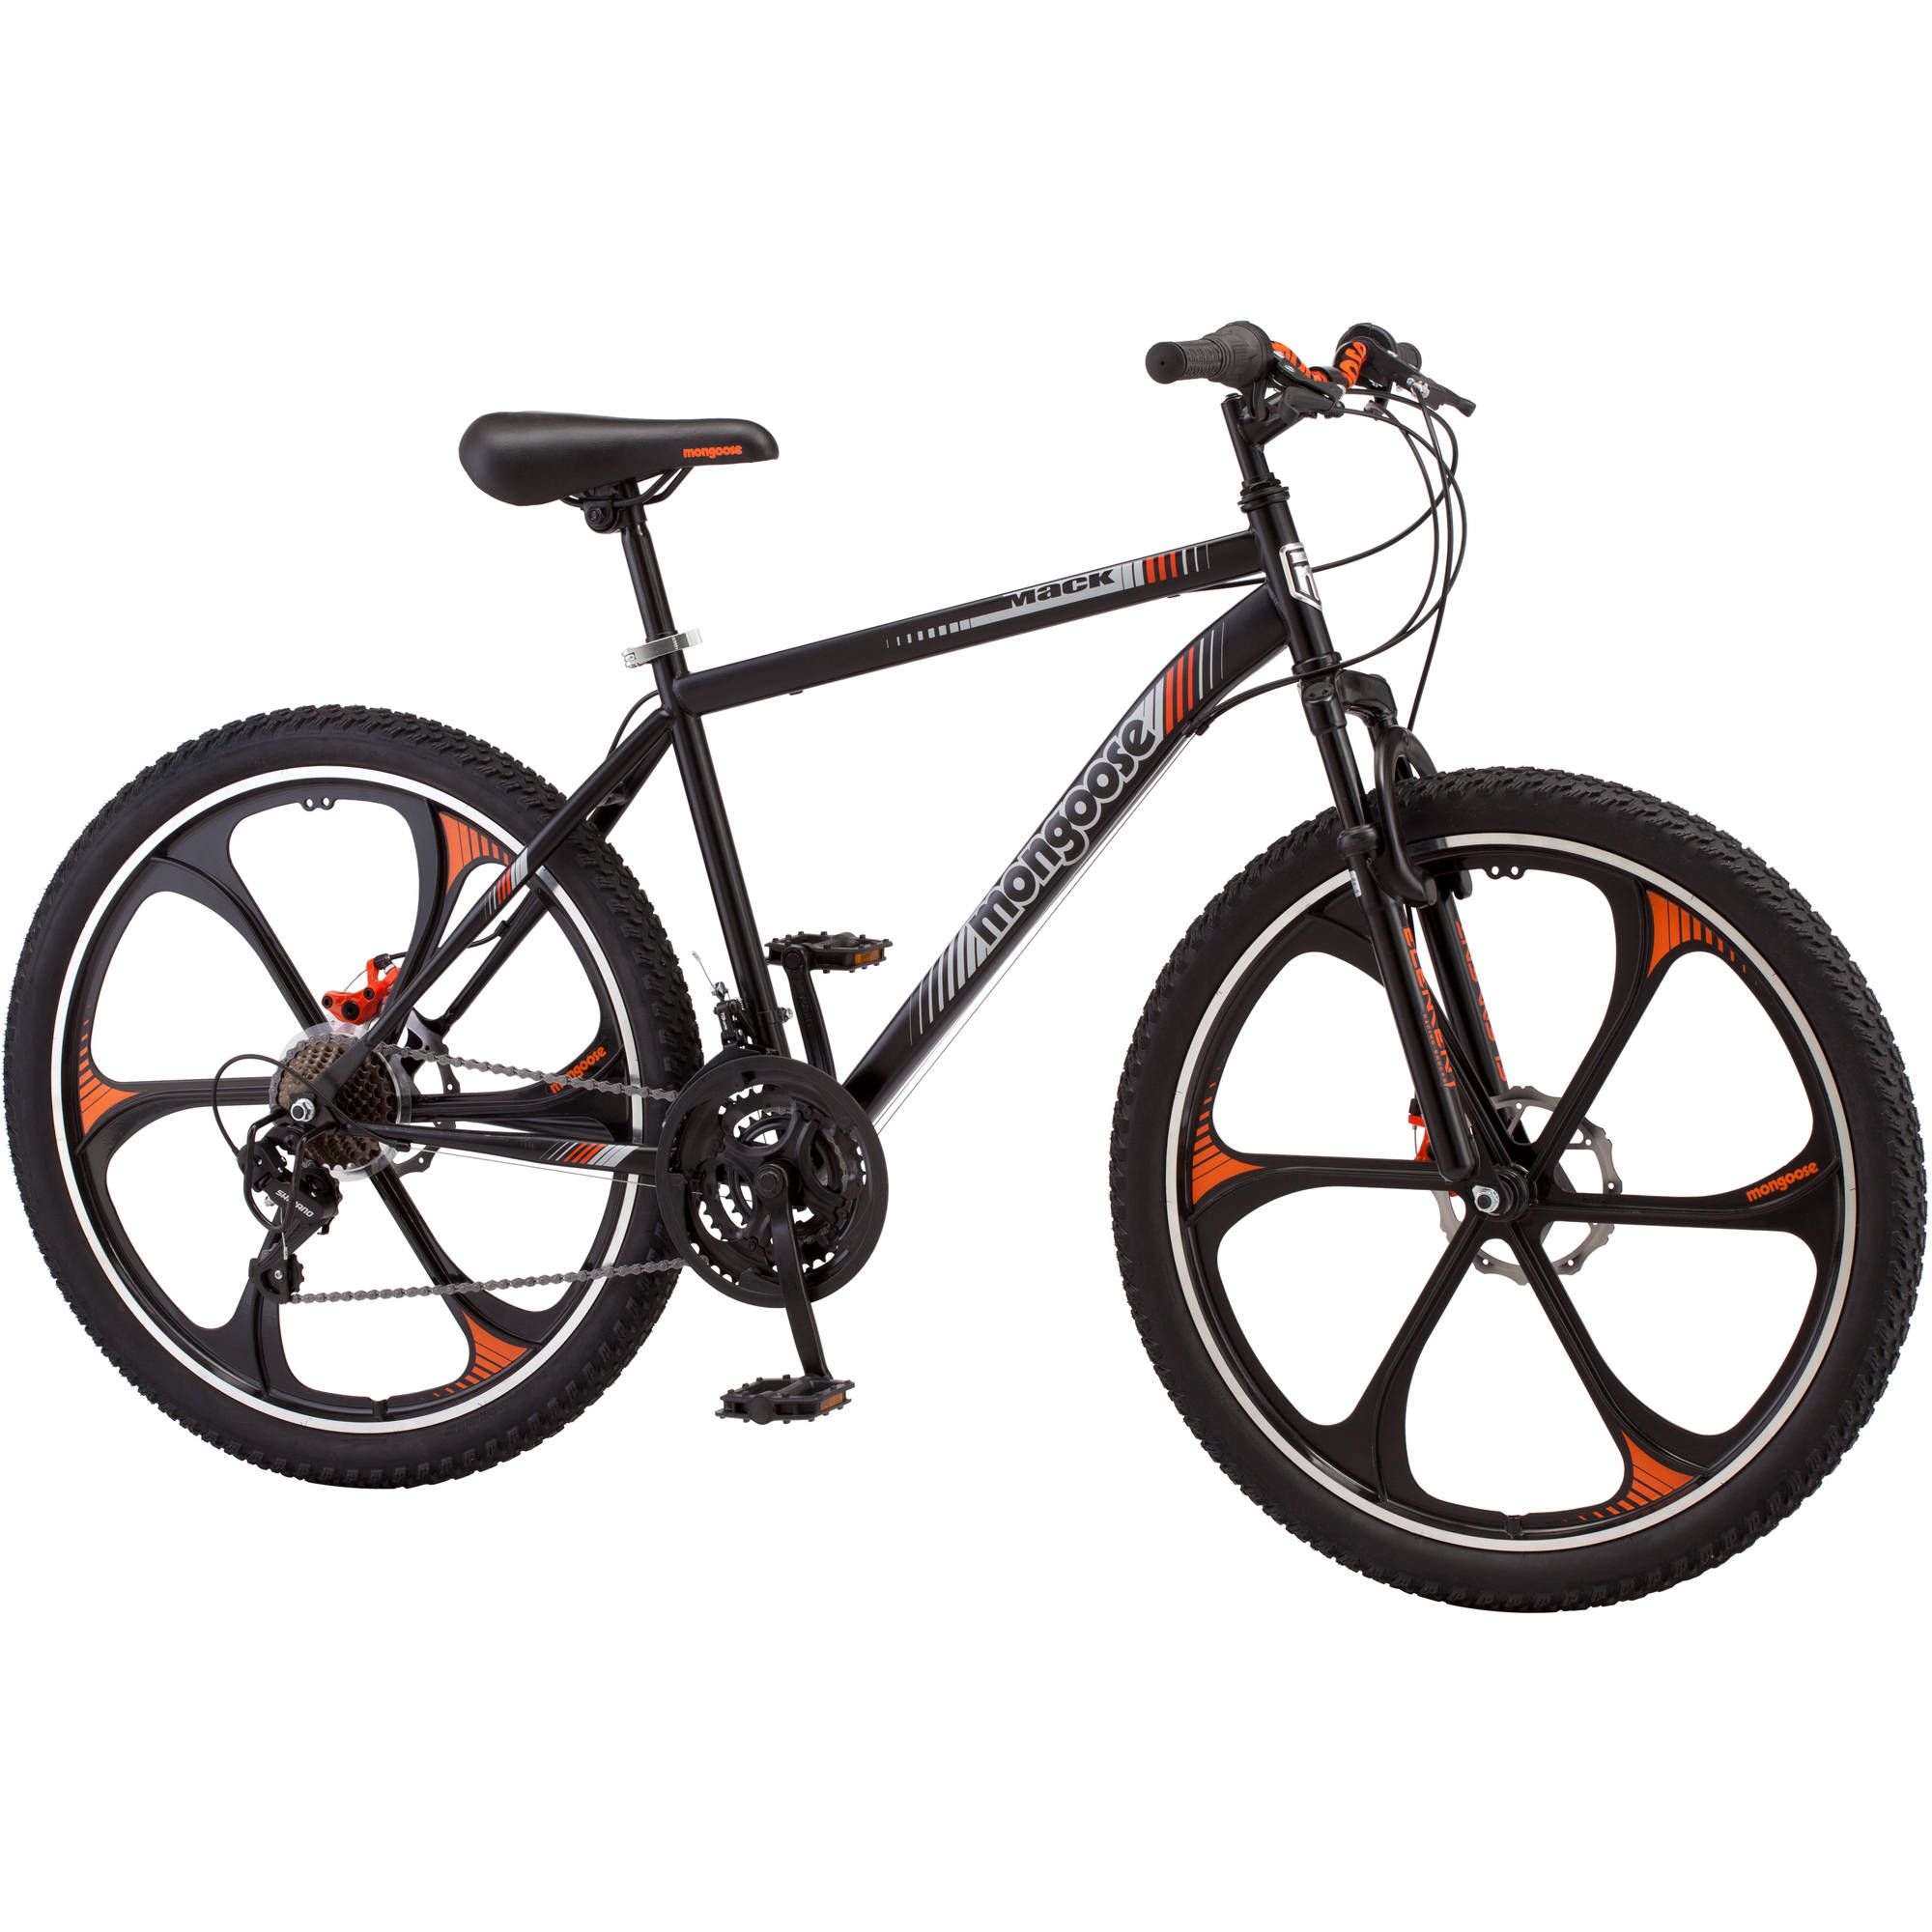 mongoose mountain bike prices - 1000×1000